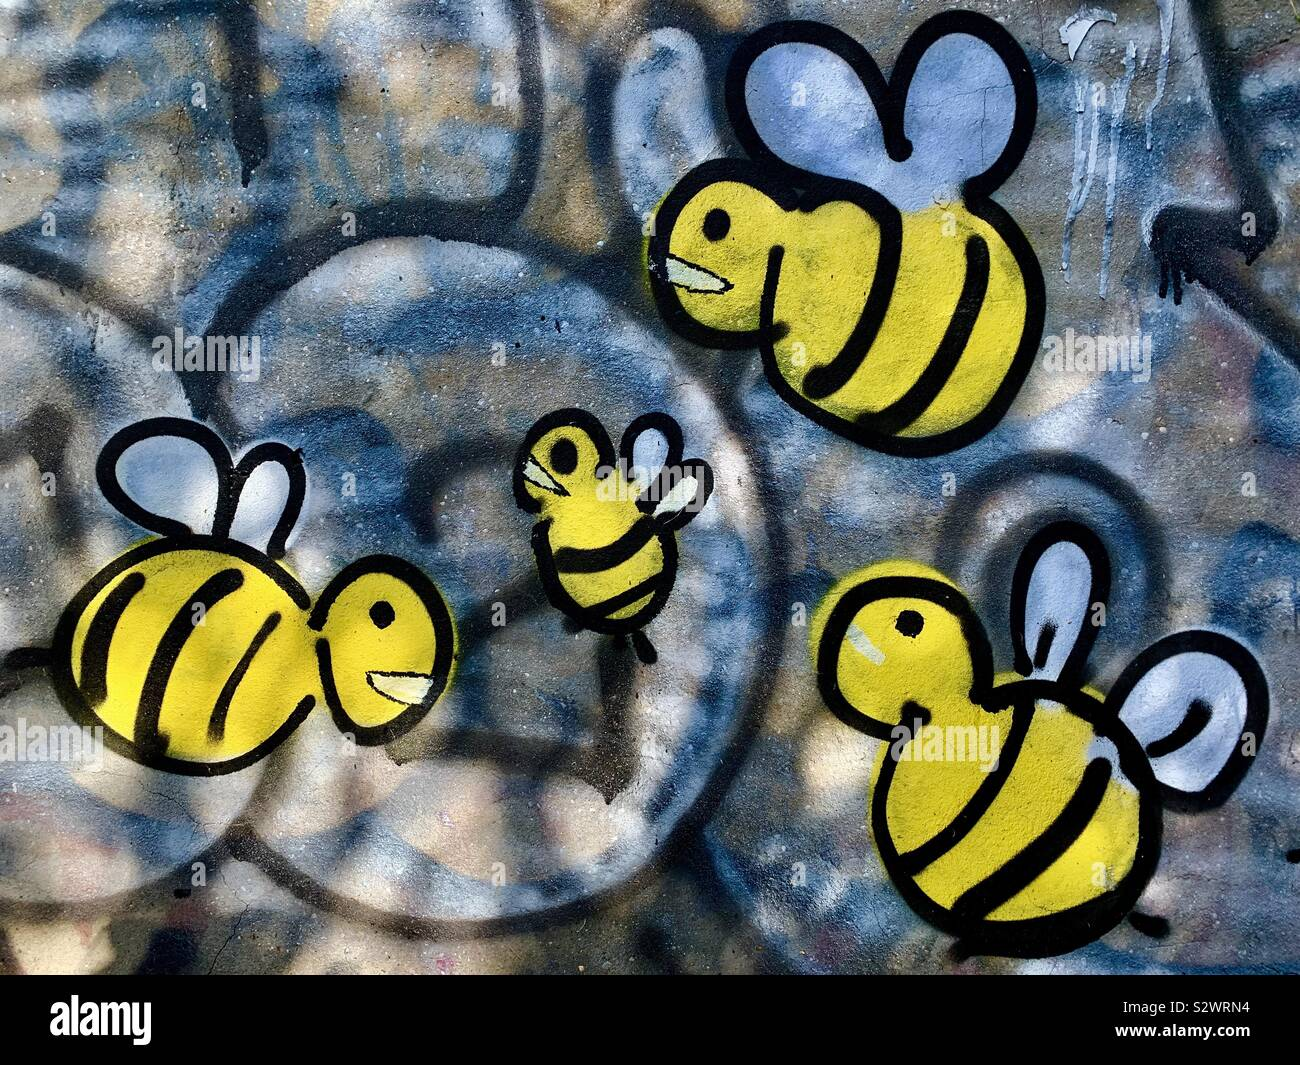 Graffiti of bees on a brick wall by Regent's Canal London. Stock Photo